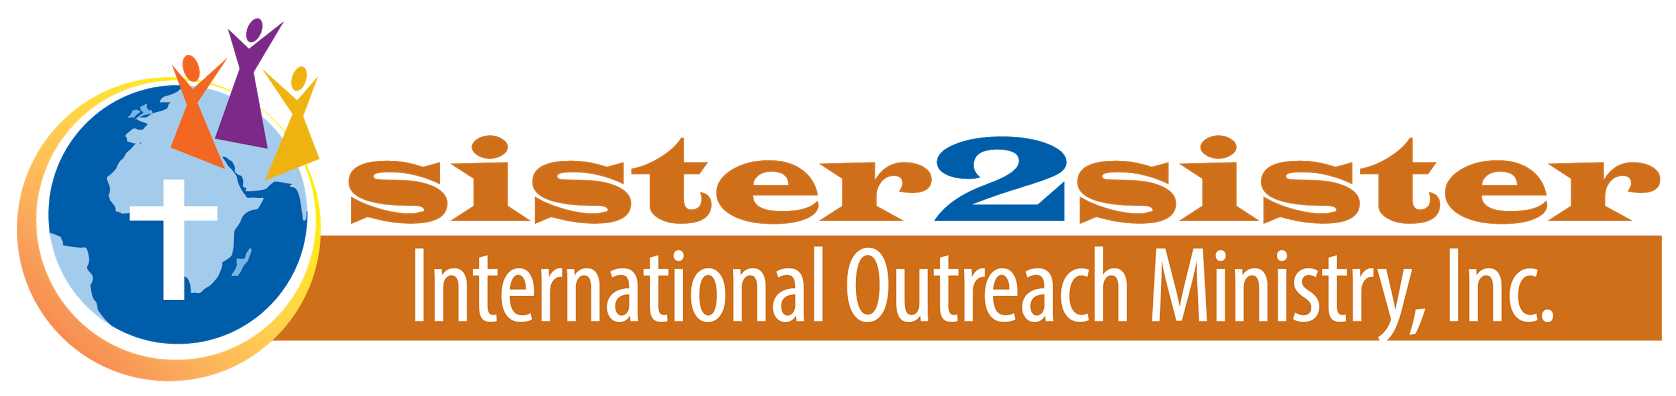 Sister2Sister International Outreach Ministry, Inc